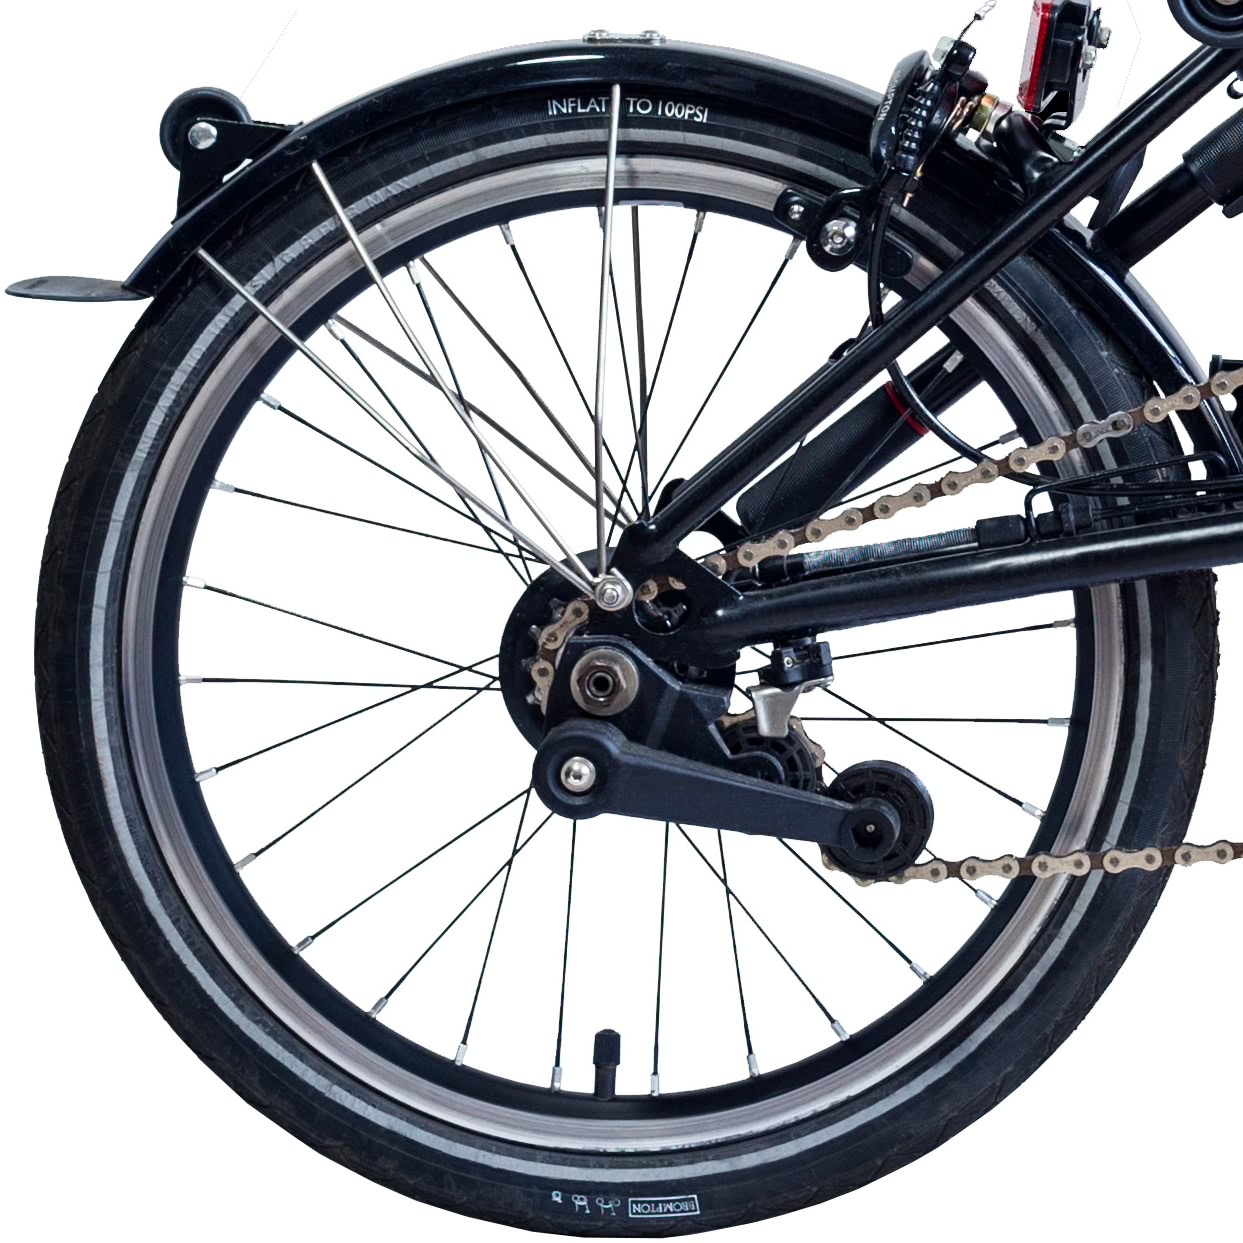 Brompton 2 speed axle fittings for the single//two speed rear wheel